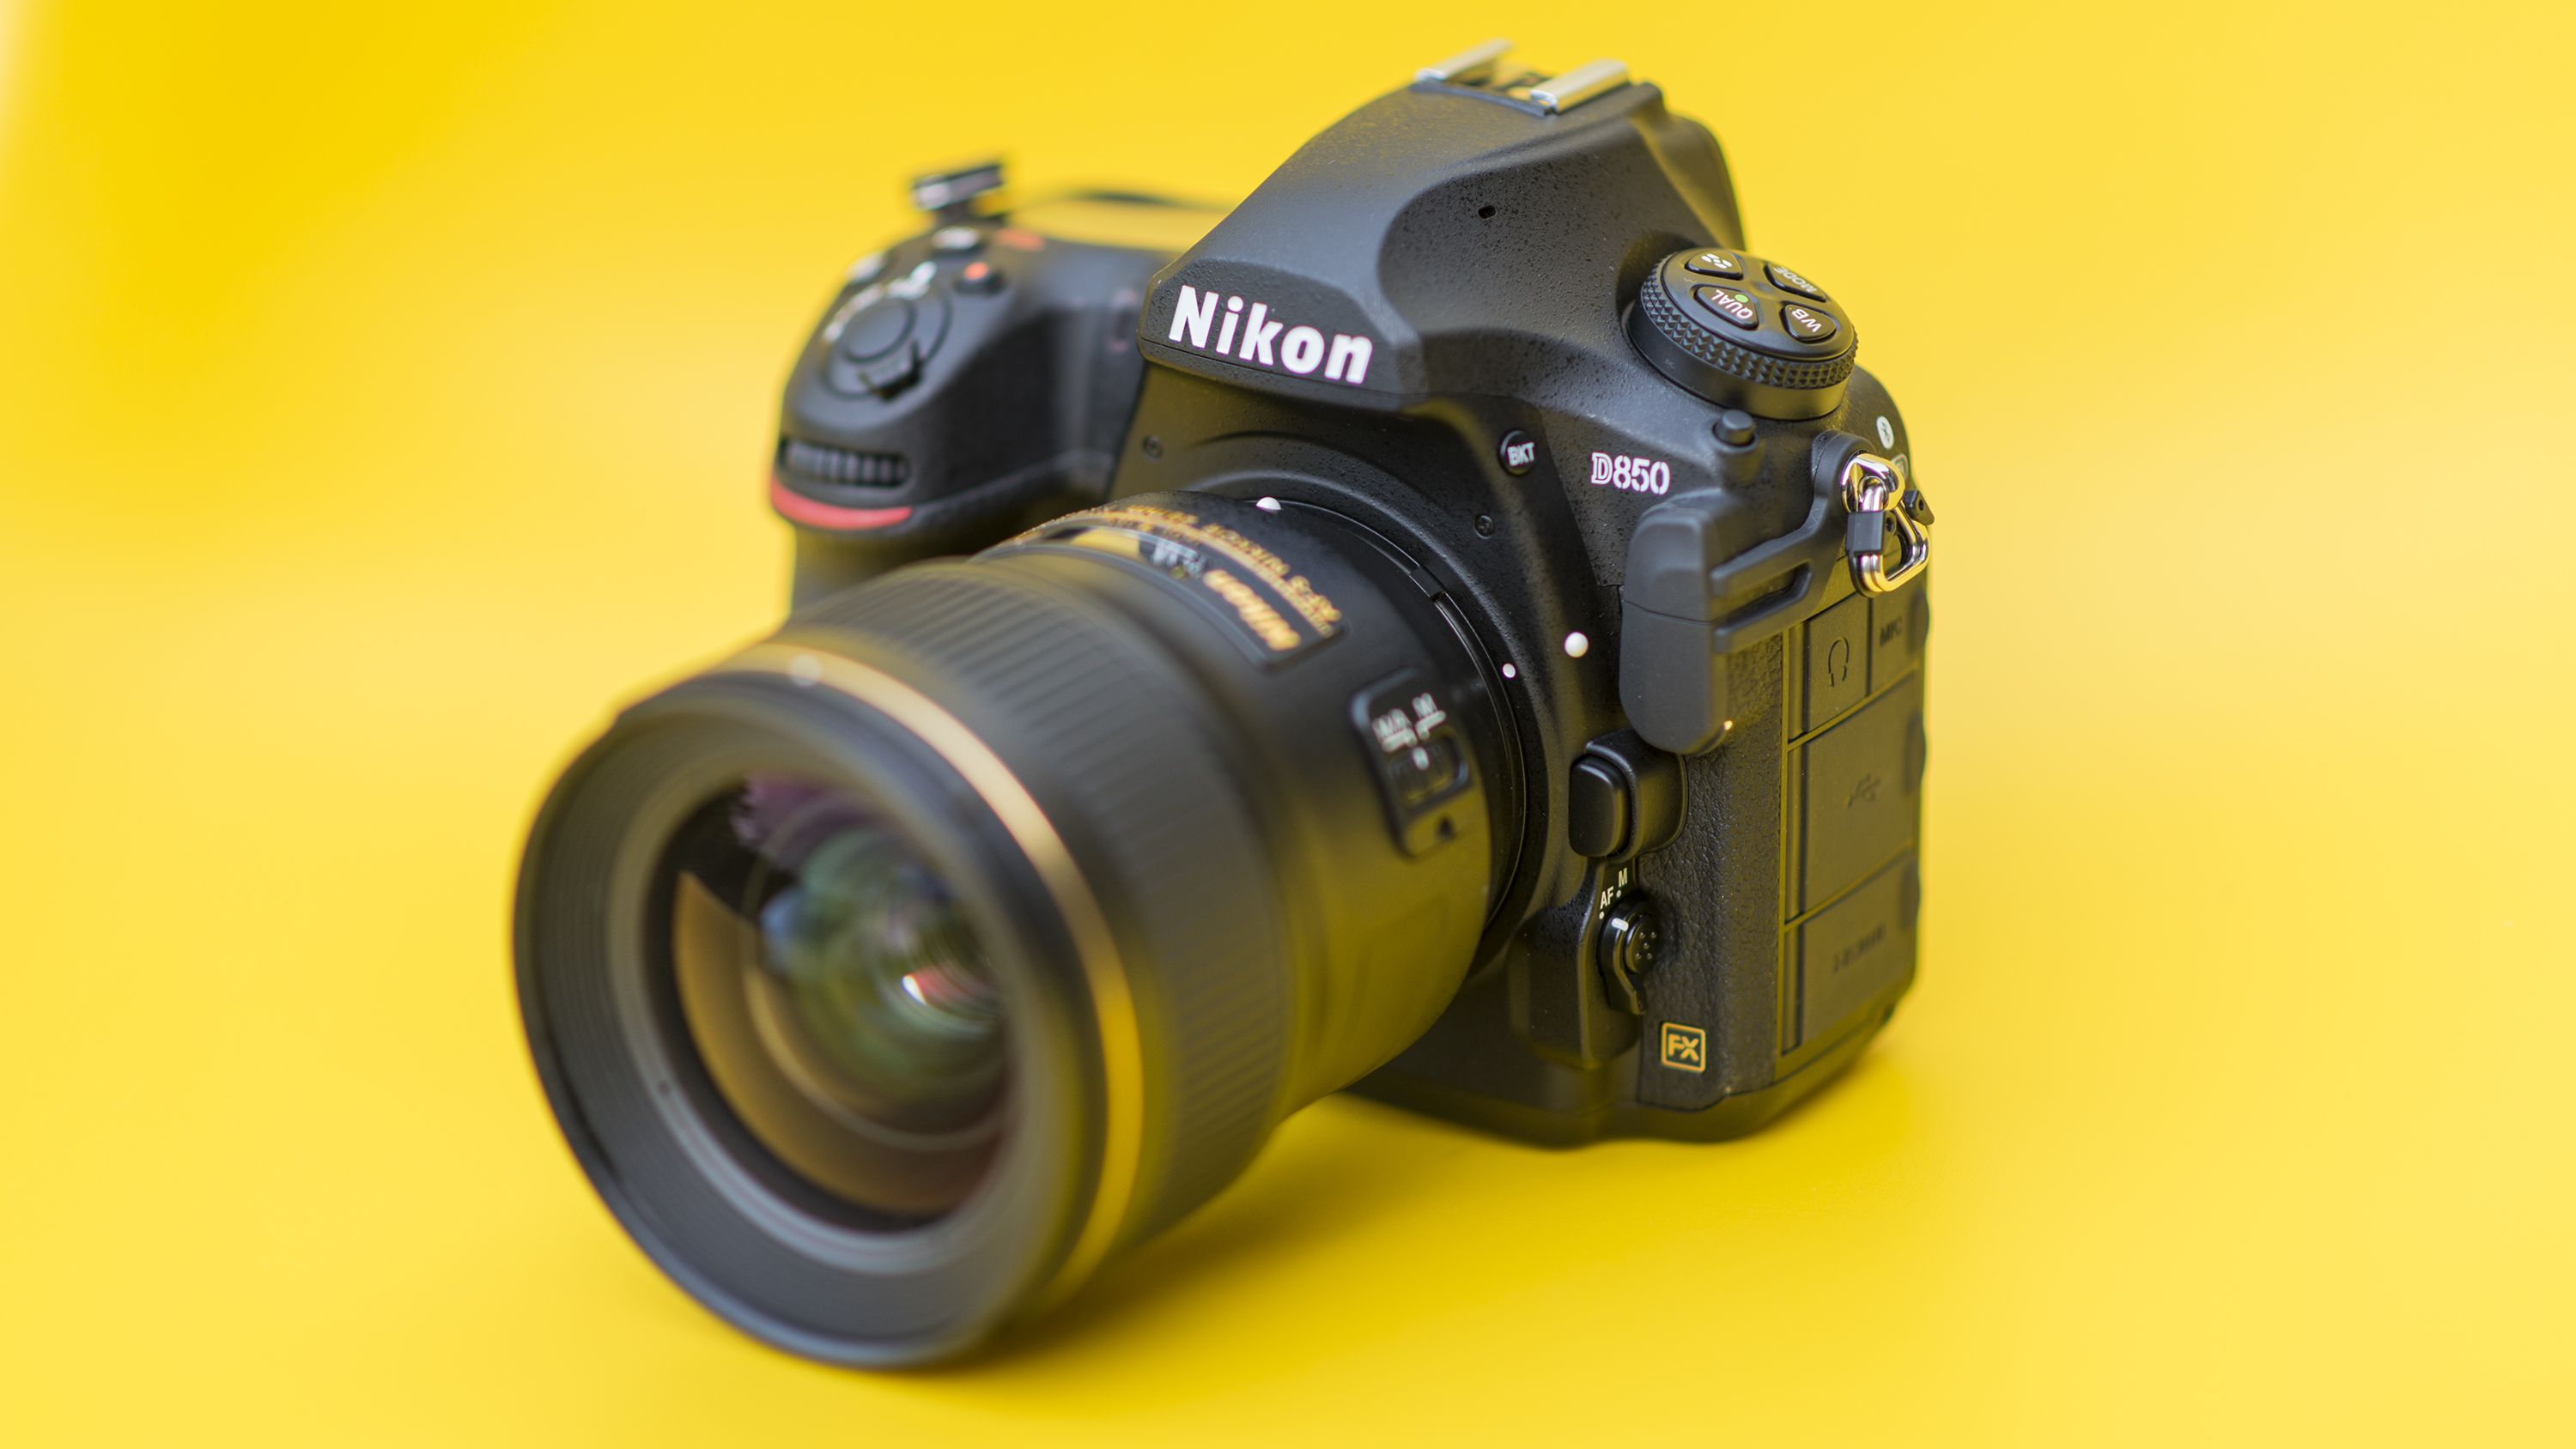 Best camera 2018: 10 of the best cameras you can buy right now